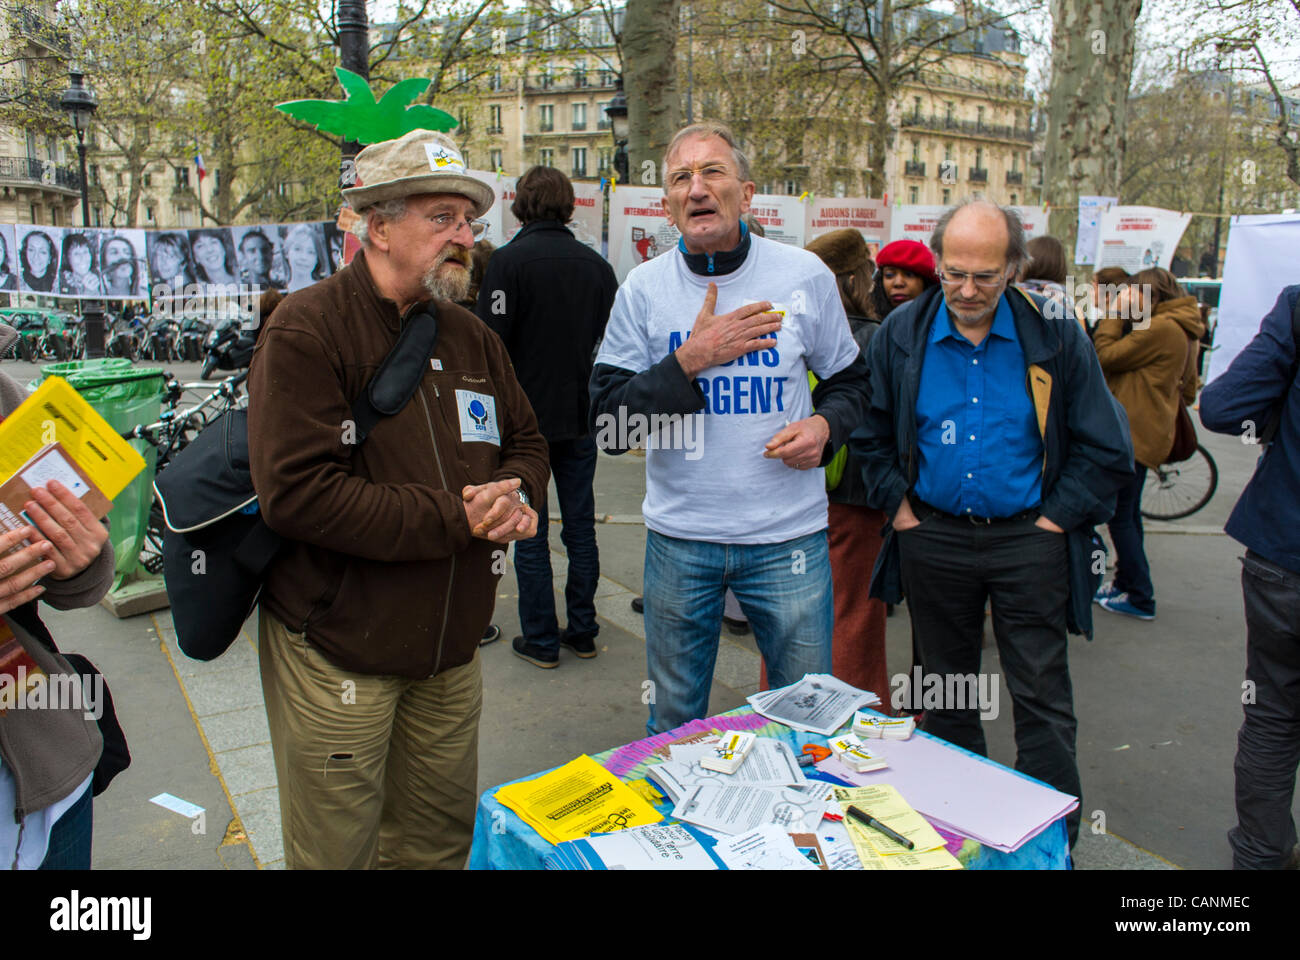 Paris, France, Male Activists at Environment Awareness Protests, Public Event,  'Liberons les Elections', - Stock Image